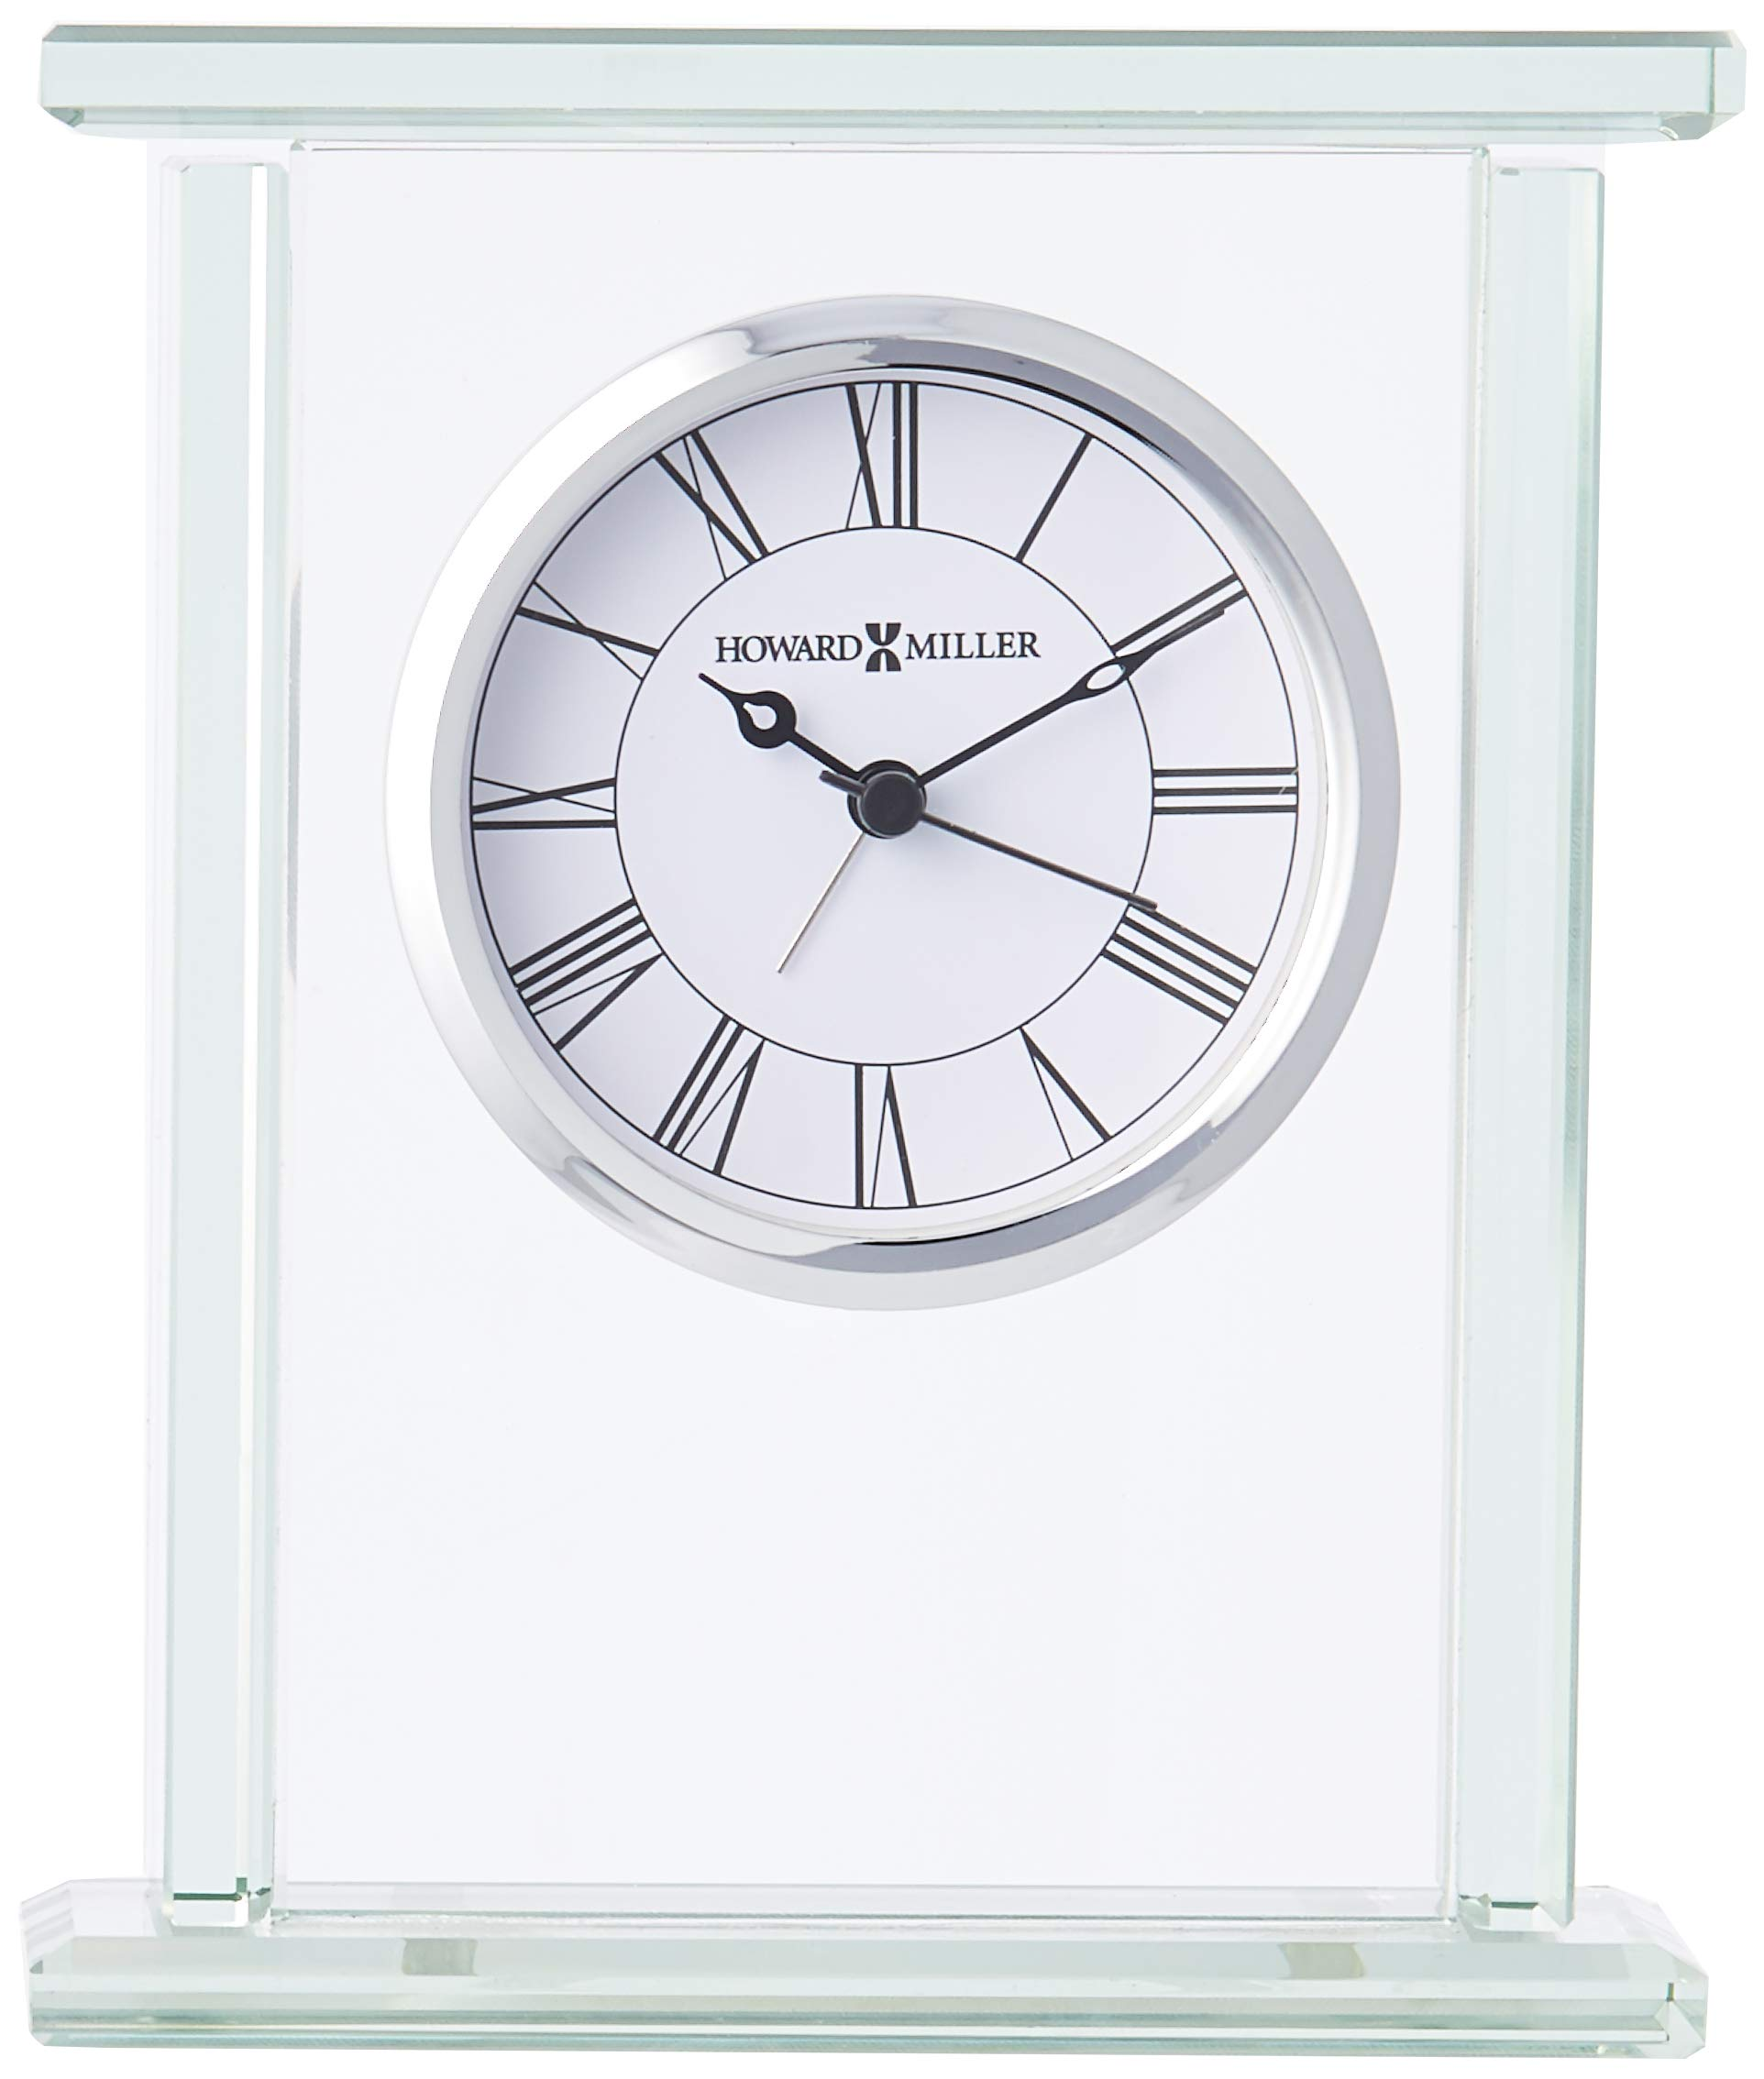 """Howard Miller 645-643 Cooper Table Clock - Glass carriage alarm clock is constructed of .375"""" beveled glass panels. The dial offers a white background with black Roman numerals beneath glass and a polished chrome finished bezel.  The hour, minute and seconds hands are black, while the alarm hand is silver. Quartz, battery-operated alarm movement includes one AA sized battery. - clocks, bedroom-decor, bedroom - 71F 1YA U6L -"""